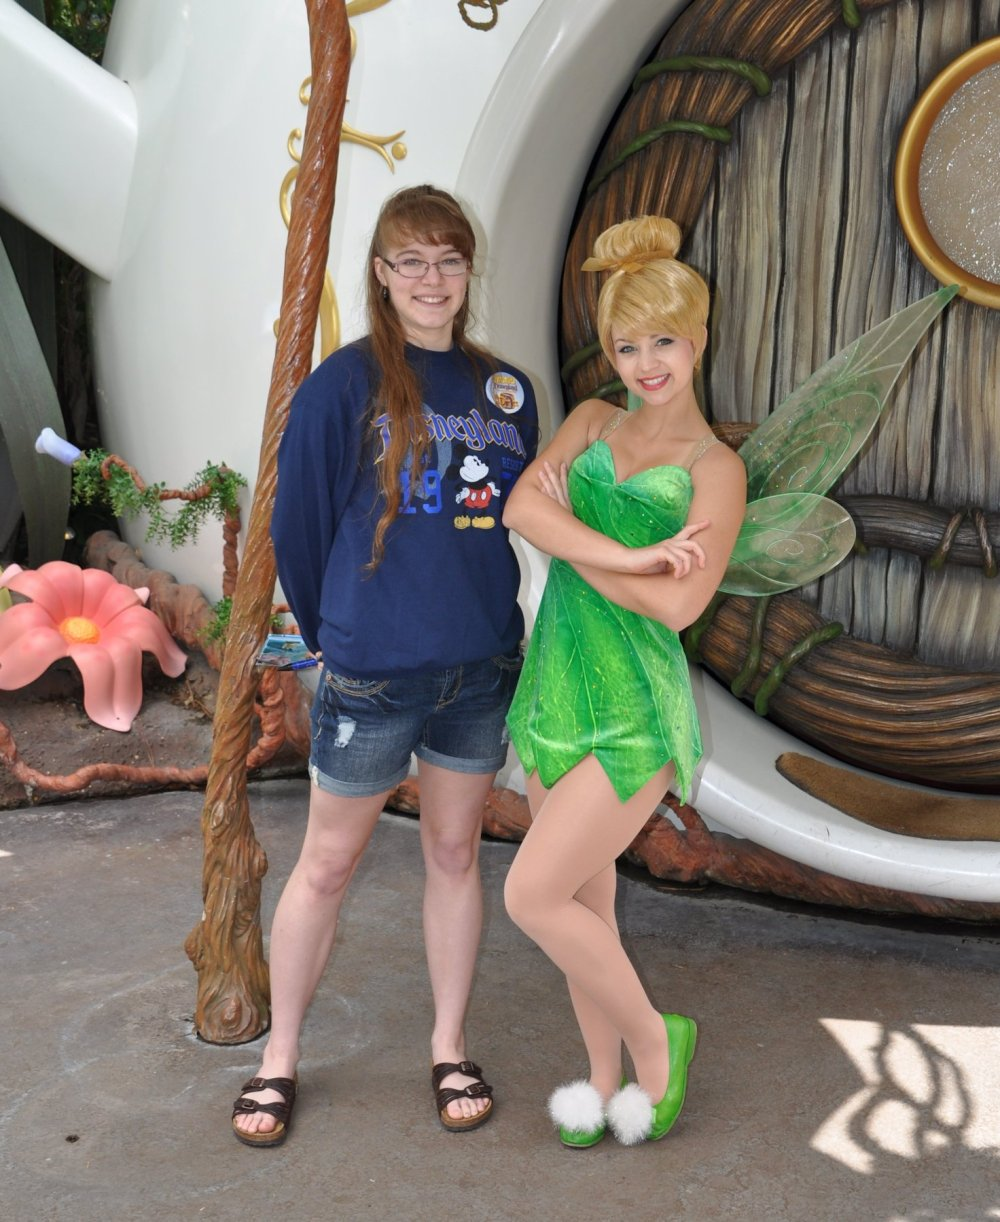 """Miss T's fave stop was probably Pixie Hollow. She confessed to me later, """"I was expecting a person playing Tink, but she was the real Tinkerbell! She was perfect!"""""""